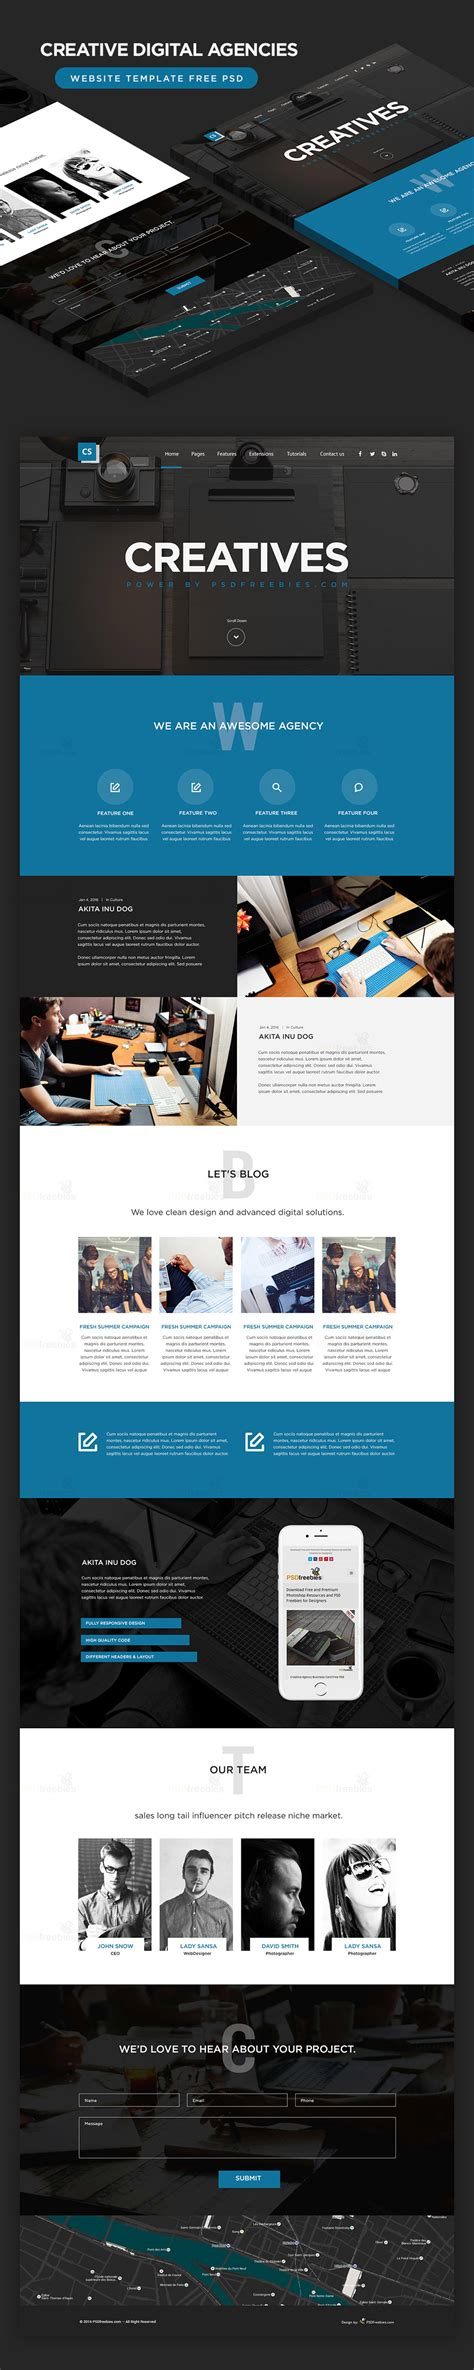 High Quality 50 Free Corporate And Business Web Templates Psd Download Download Psd Digital Agency Website Templates